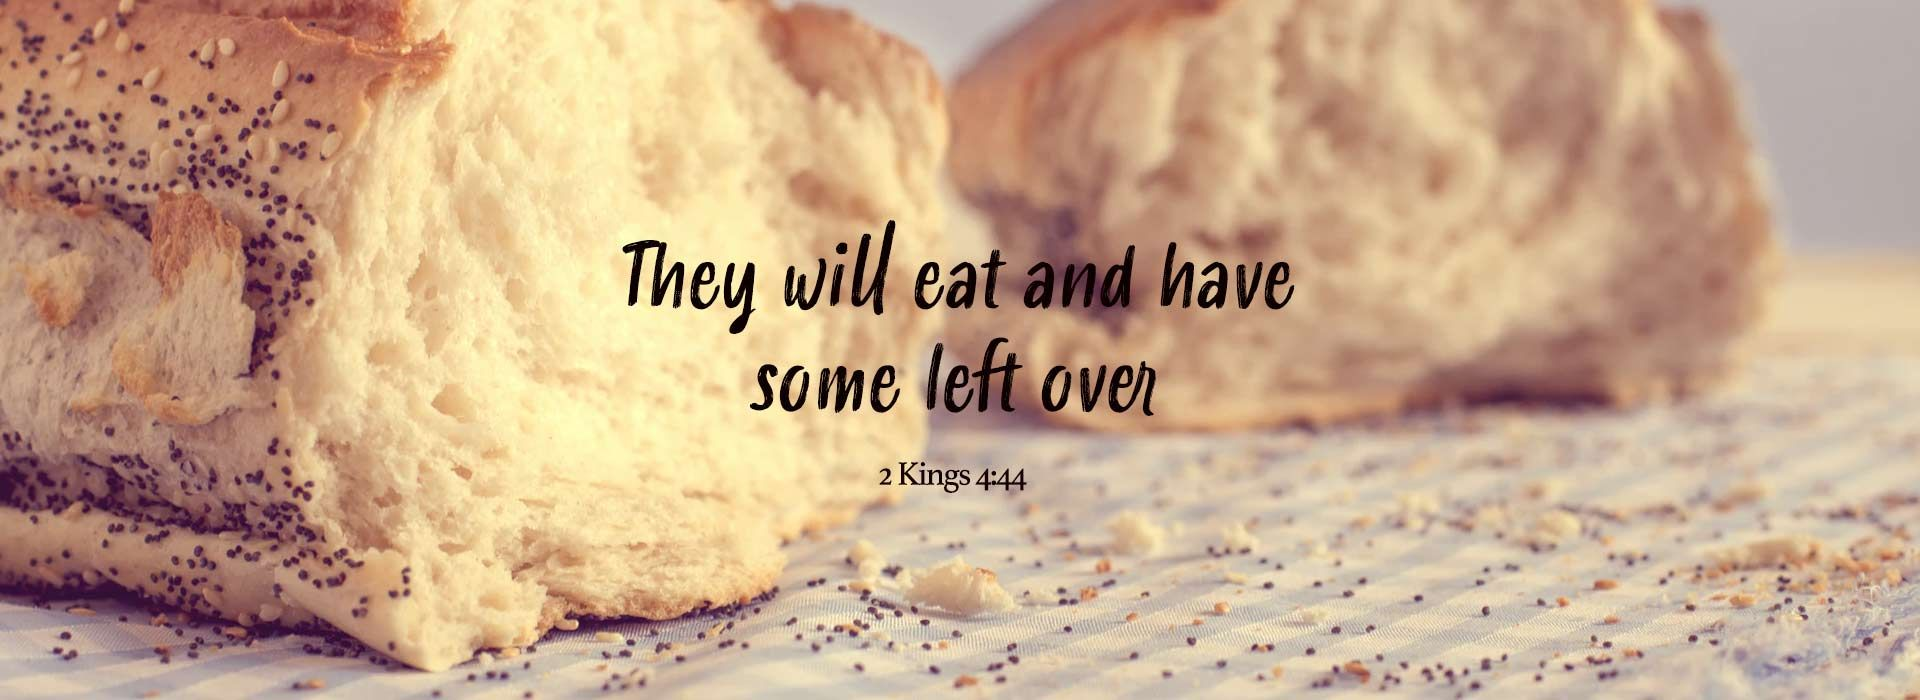 Seventeenth Sunday in Ordinary Time (25th July 2021)